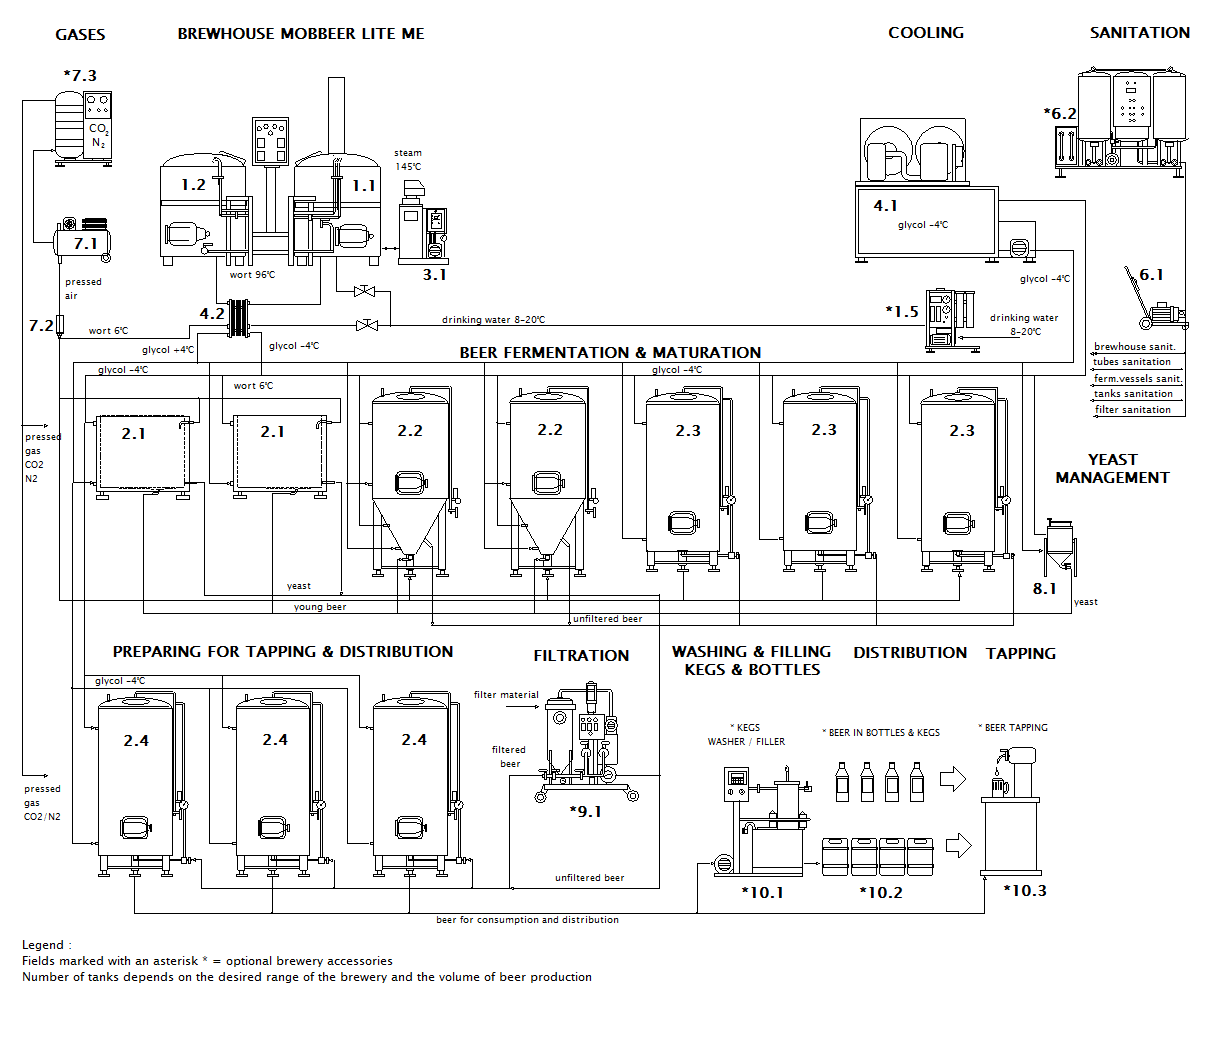 scheme of the container microbrewery MOBBEER LITE ME OCF